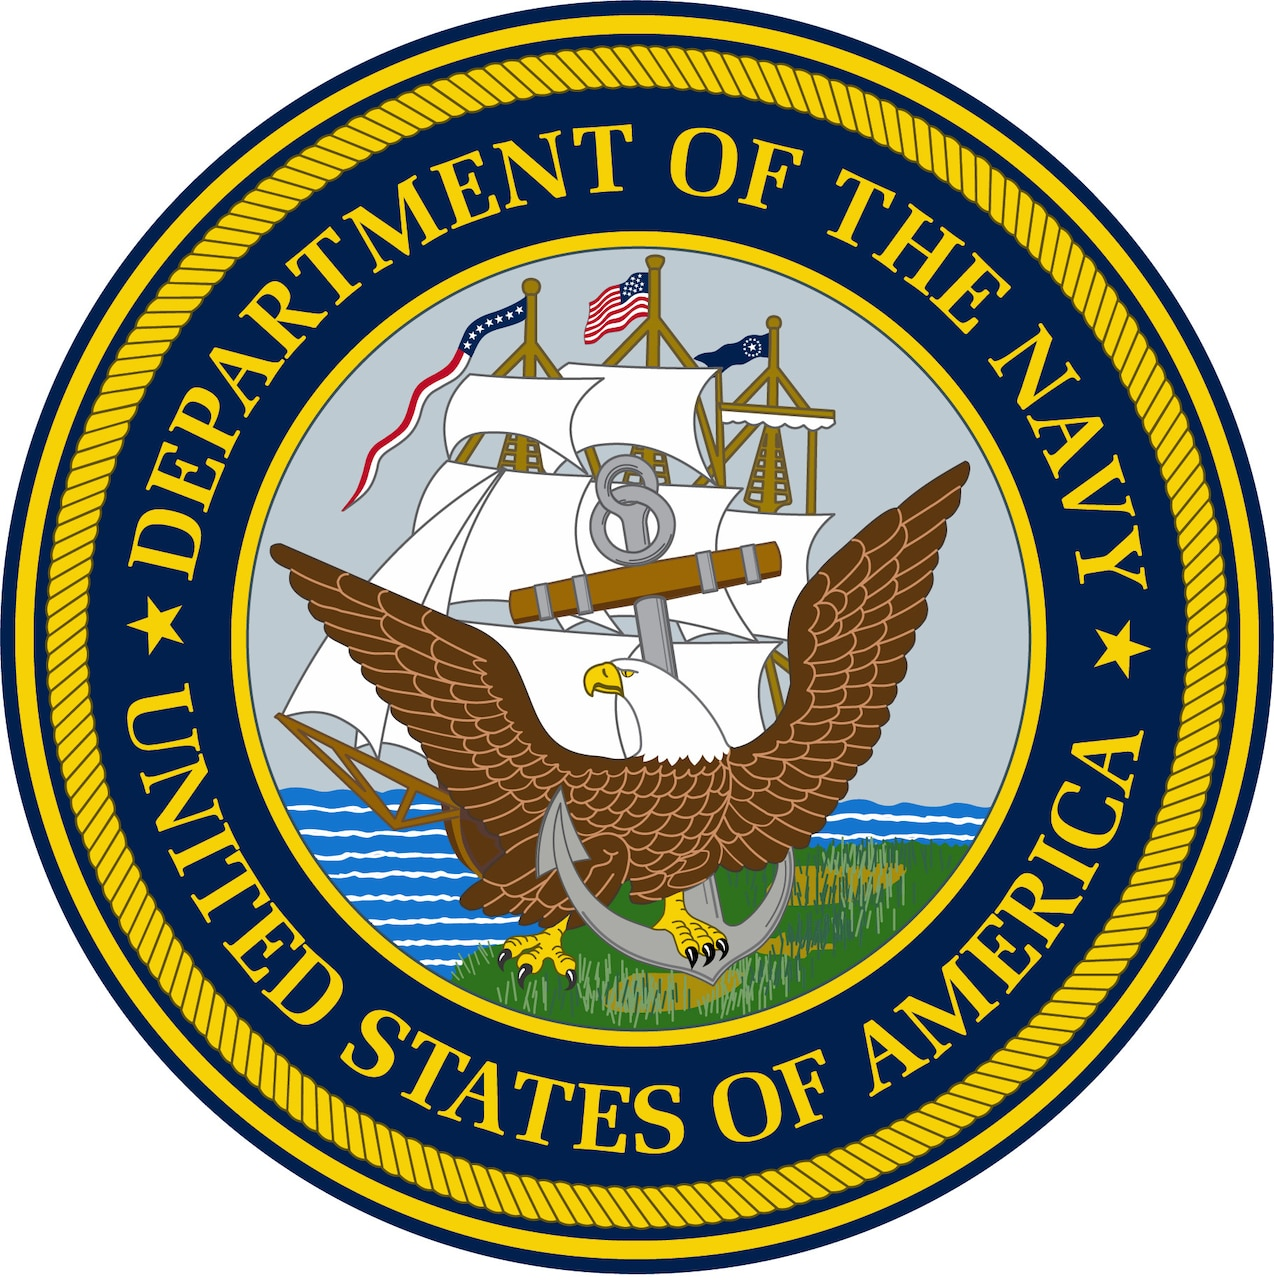 DVIDS - News - Four airmen honored with 2011 Sijan award